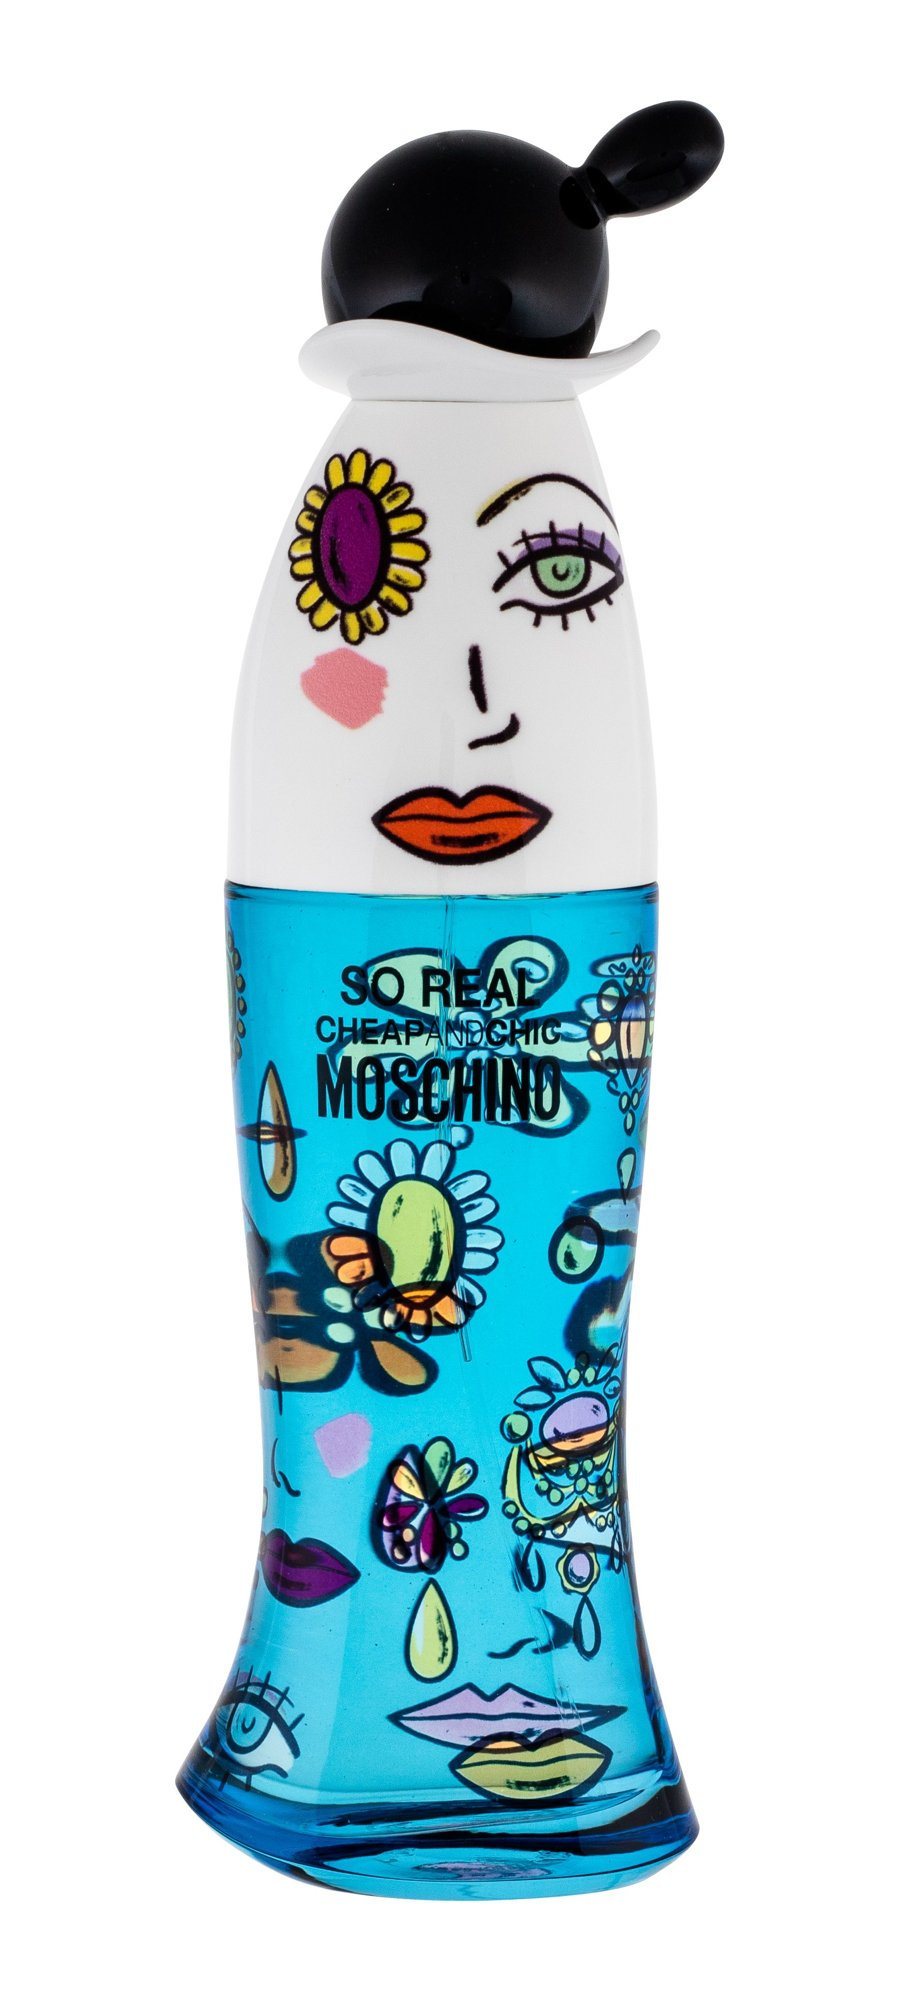 Moschino So Real Cheap and Chic Eau de Toilette 100ml